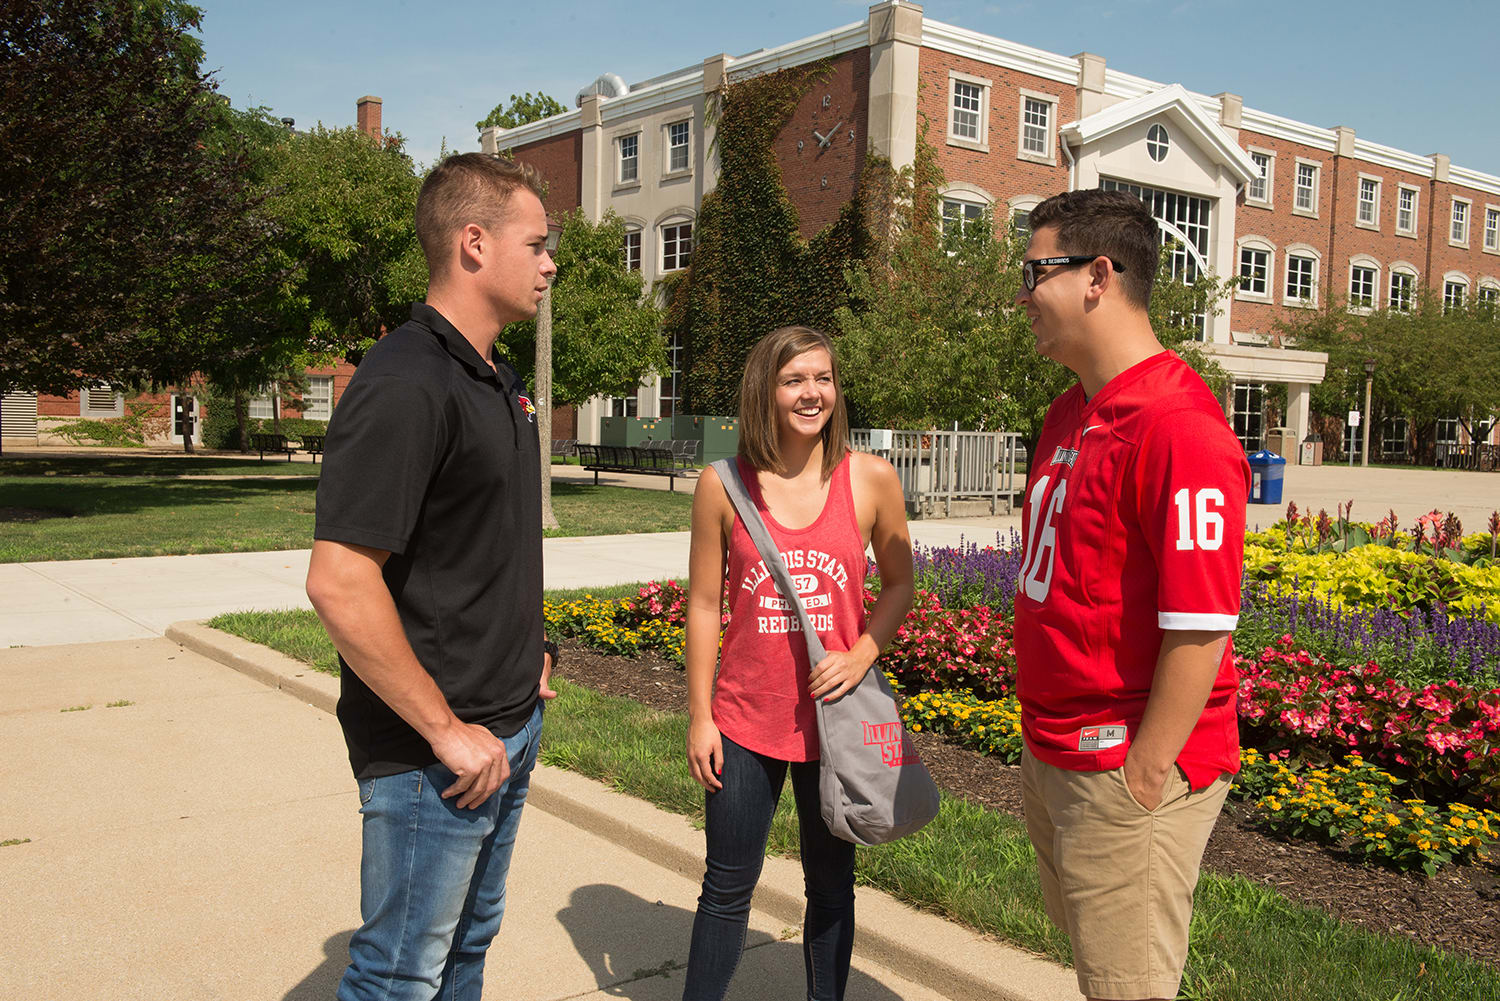 Students at Illinois State University